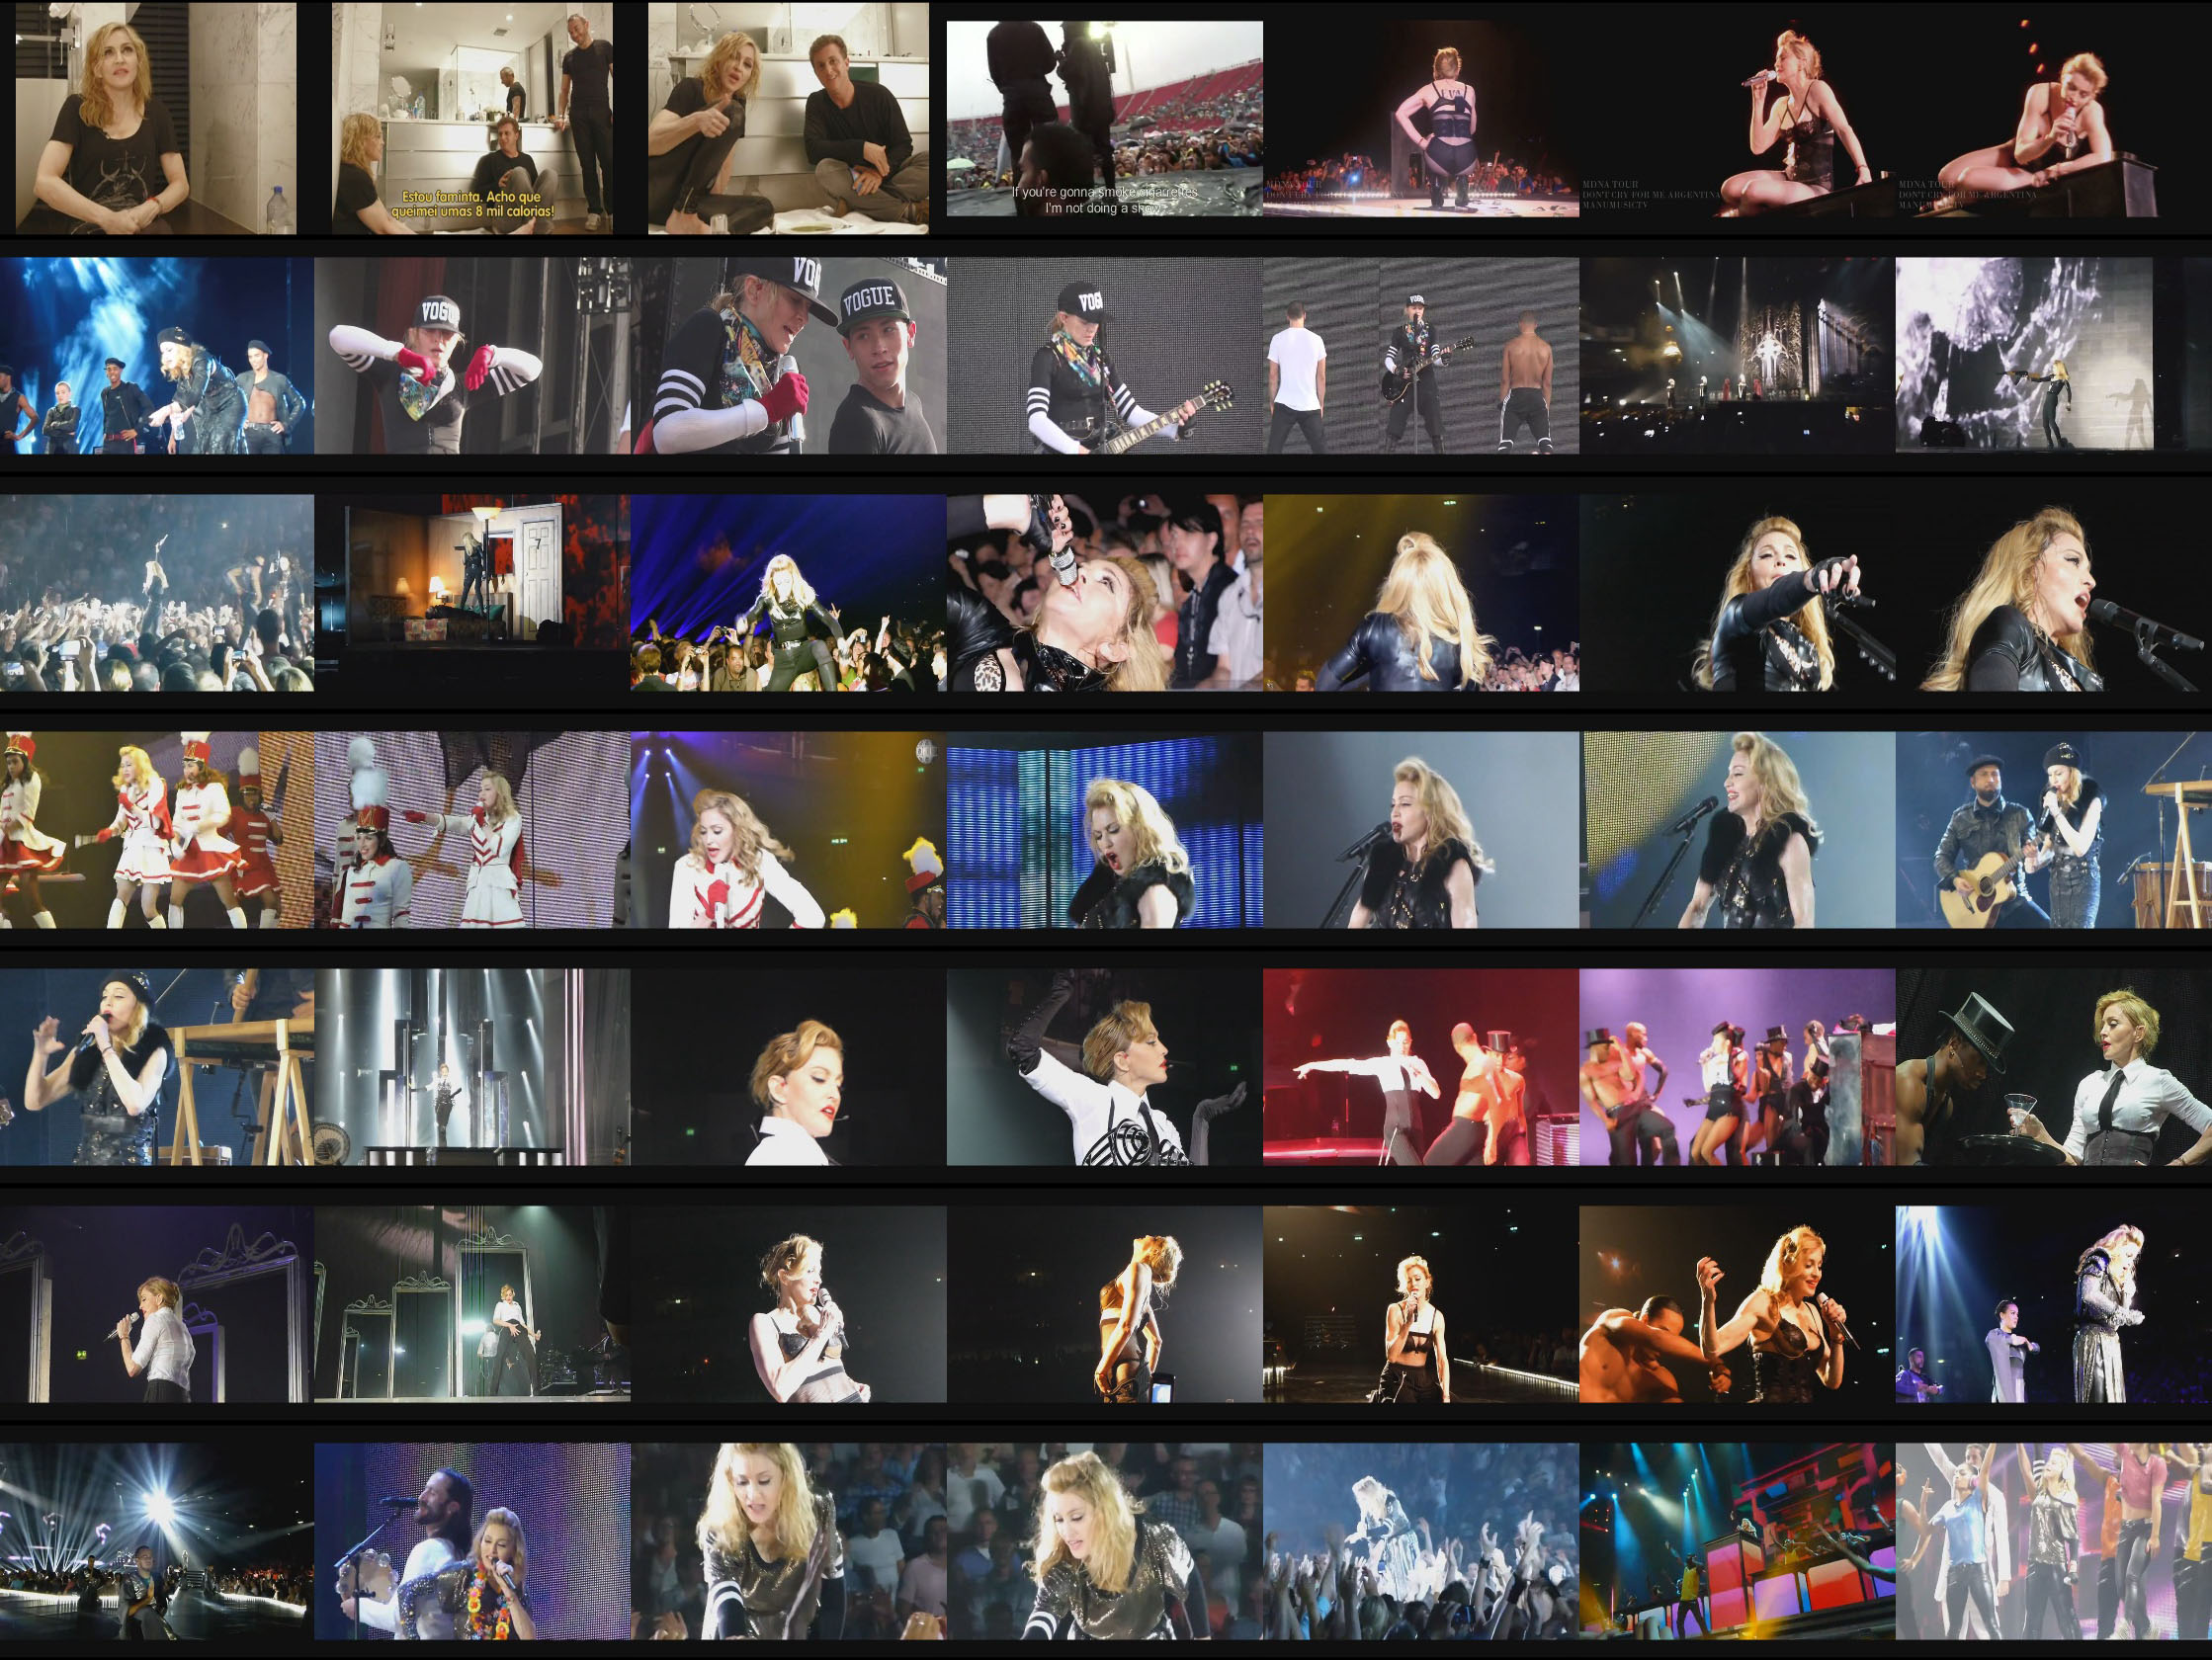 dvd-madonna-mdnatour-berlin-capturas